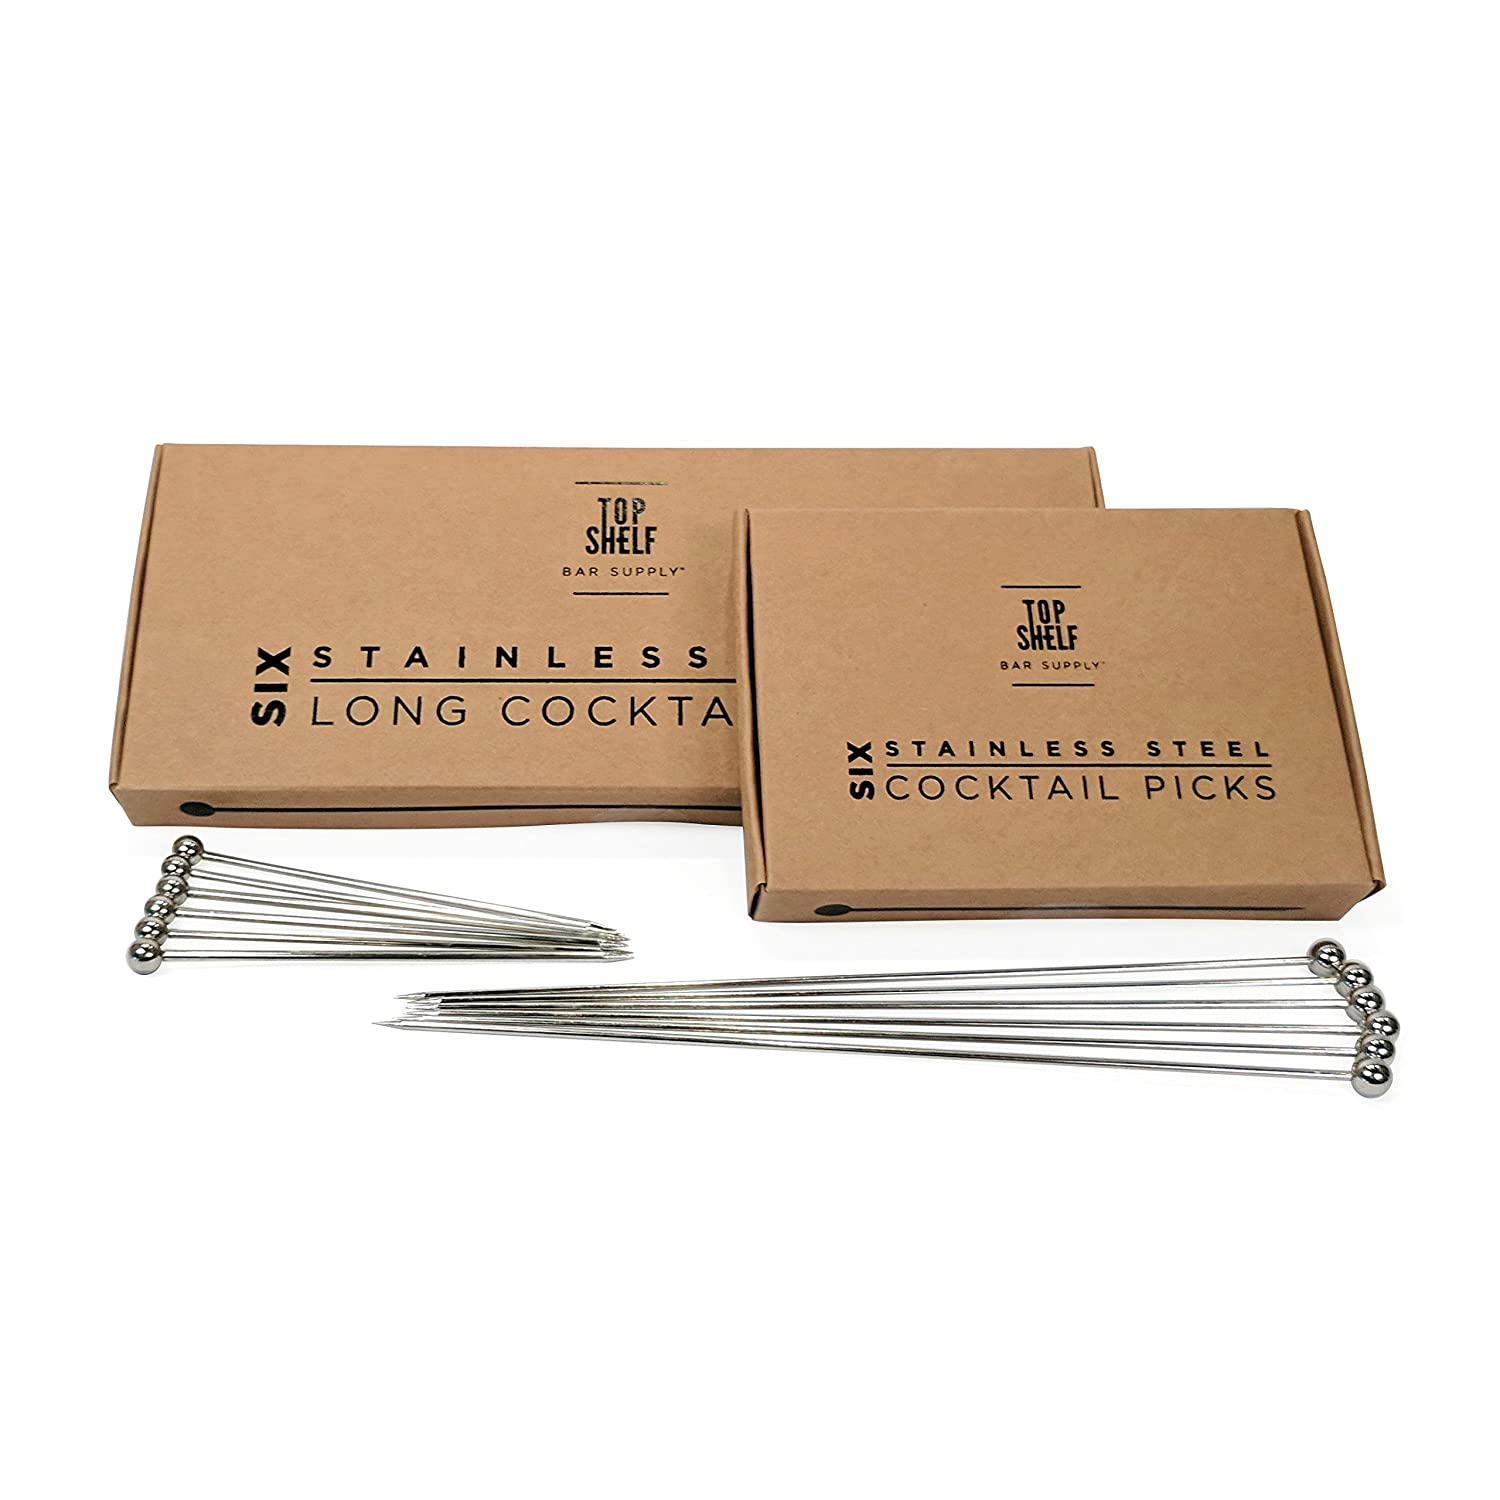 Stainless Steel Cocktail Picks - 4